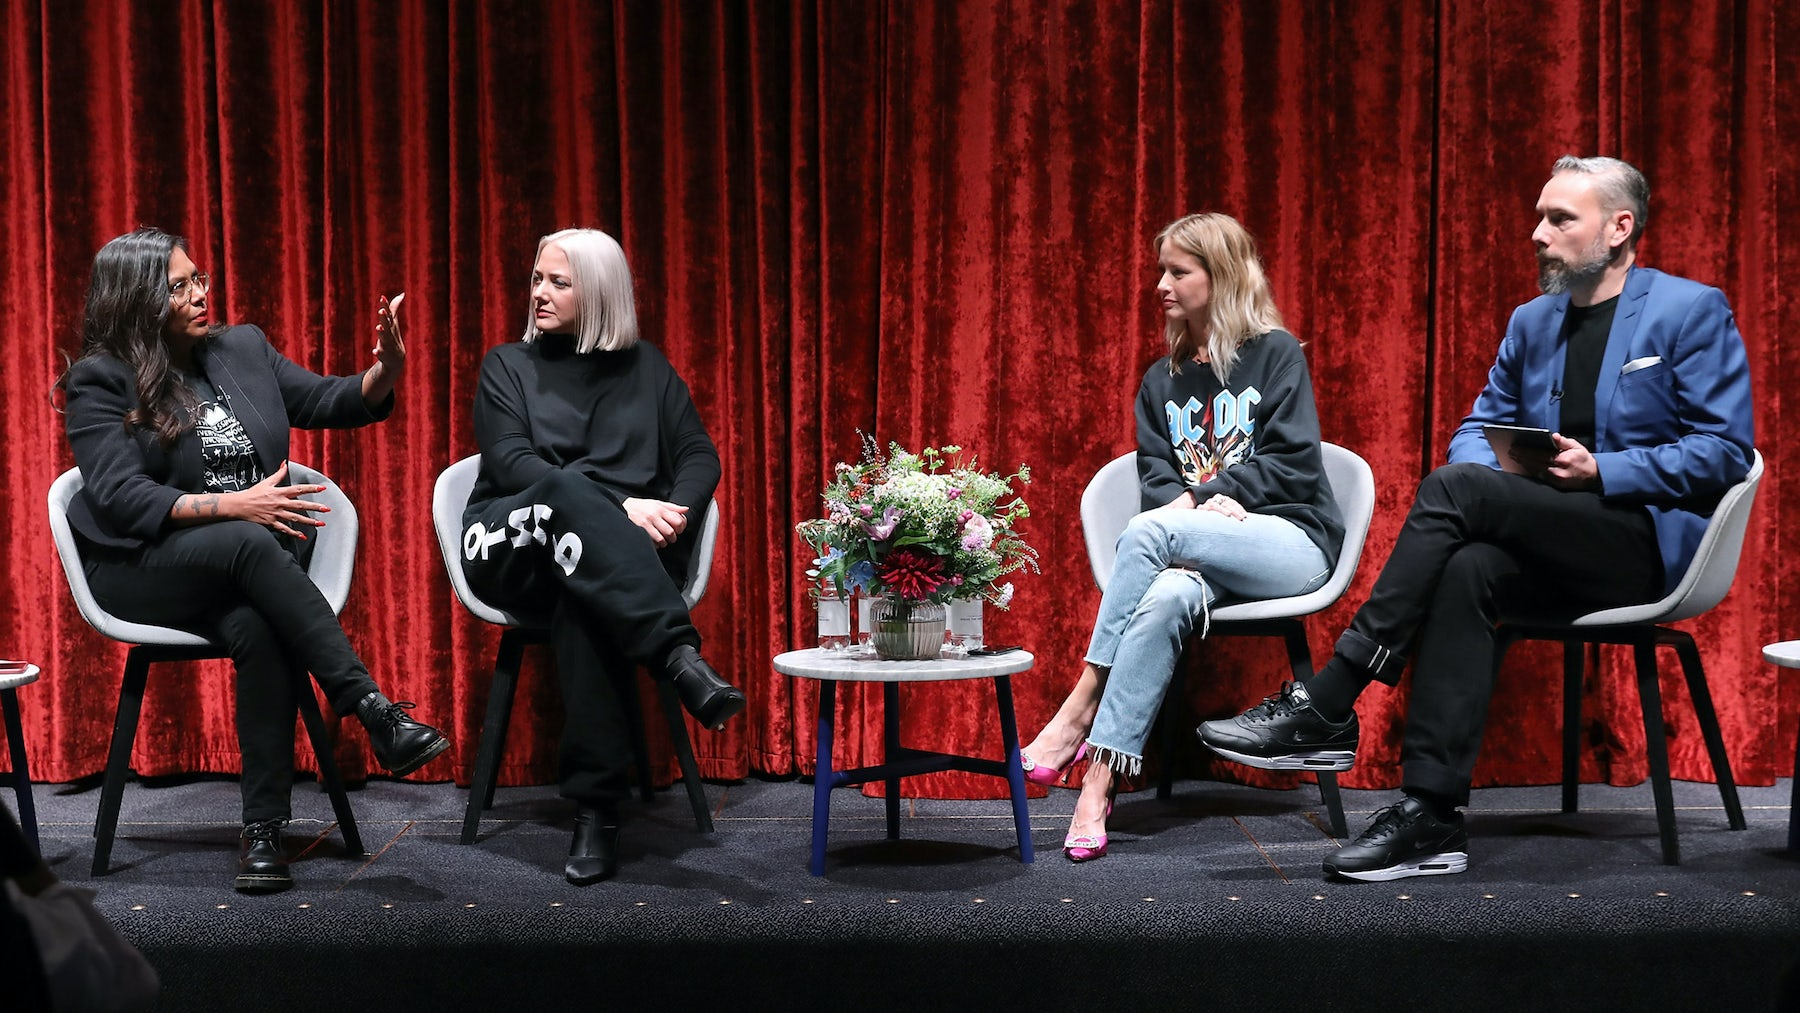 Leila Fataar, Katie White, Holli Rogers in discussion with Nick Blunden, chief commercial officer at BoF, at the 'Indside the Industry' panel discussion at The Barbican. Source: Courtesy